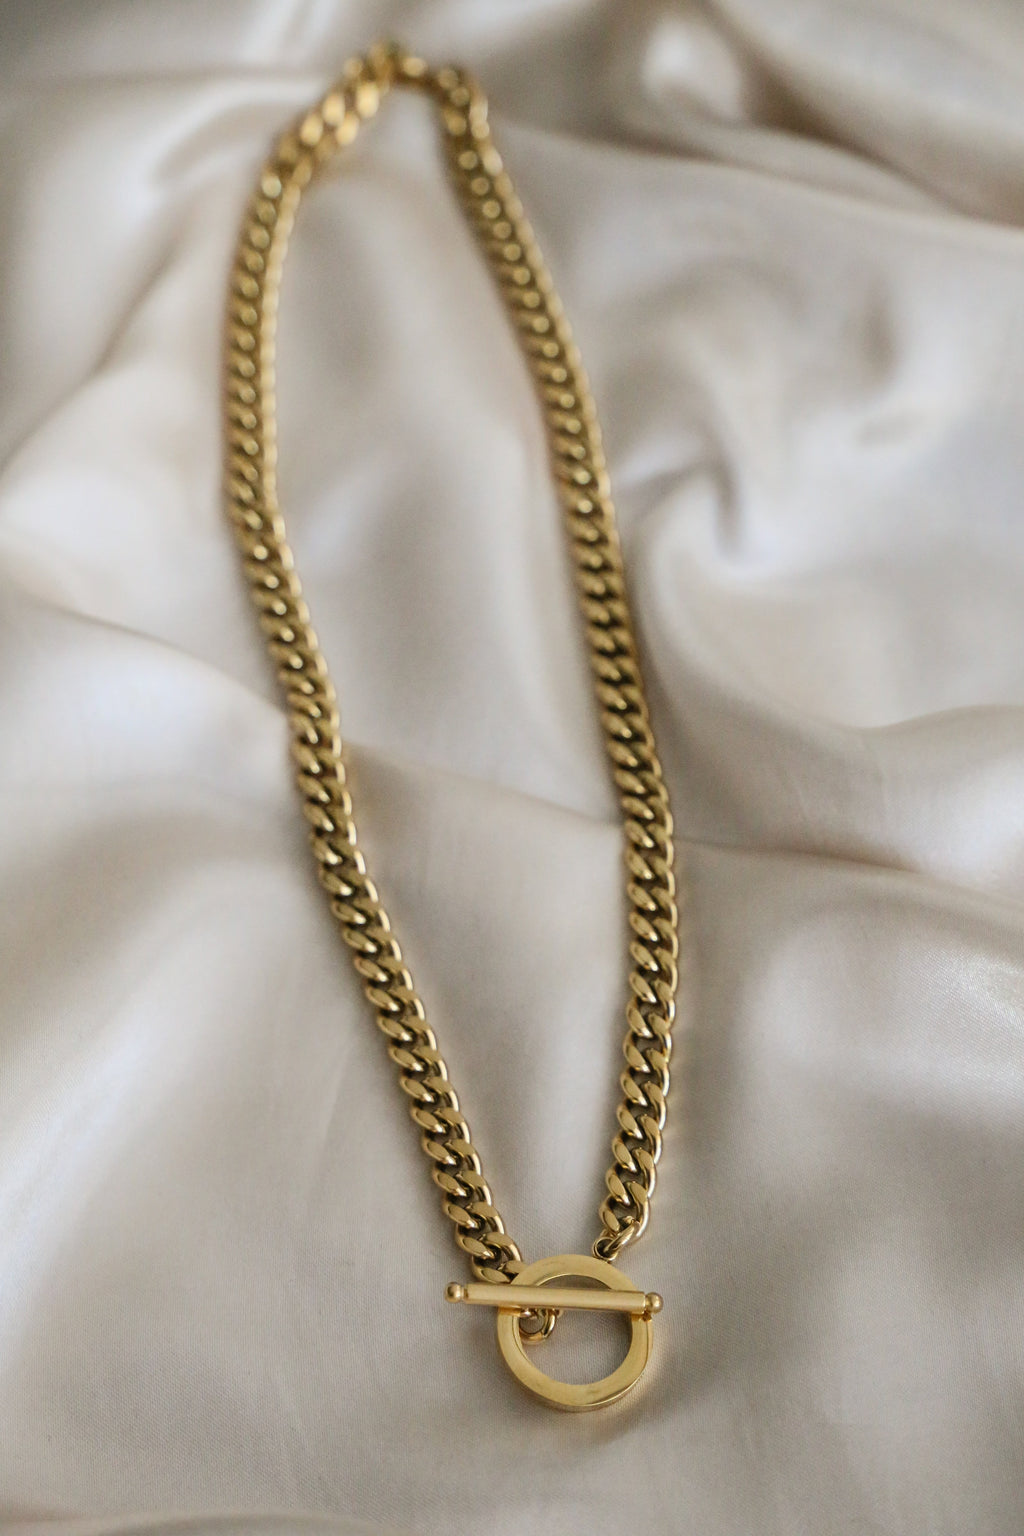 Essence Necklace - Boutique Minimaliste